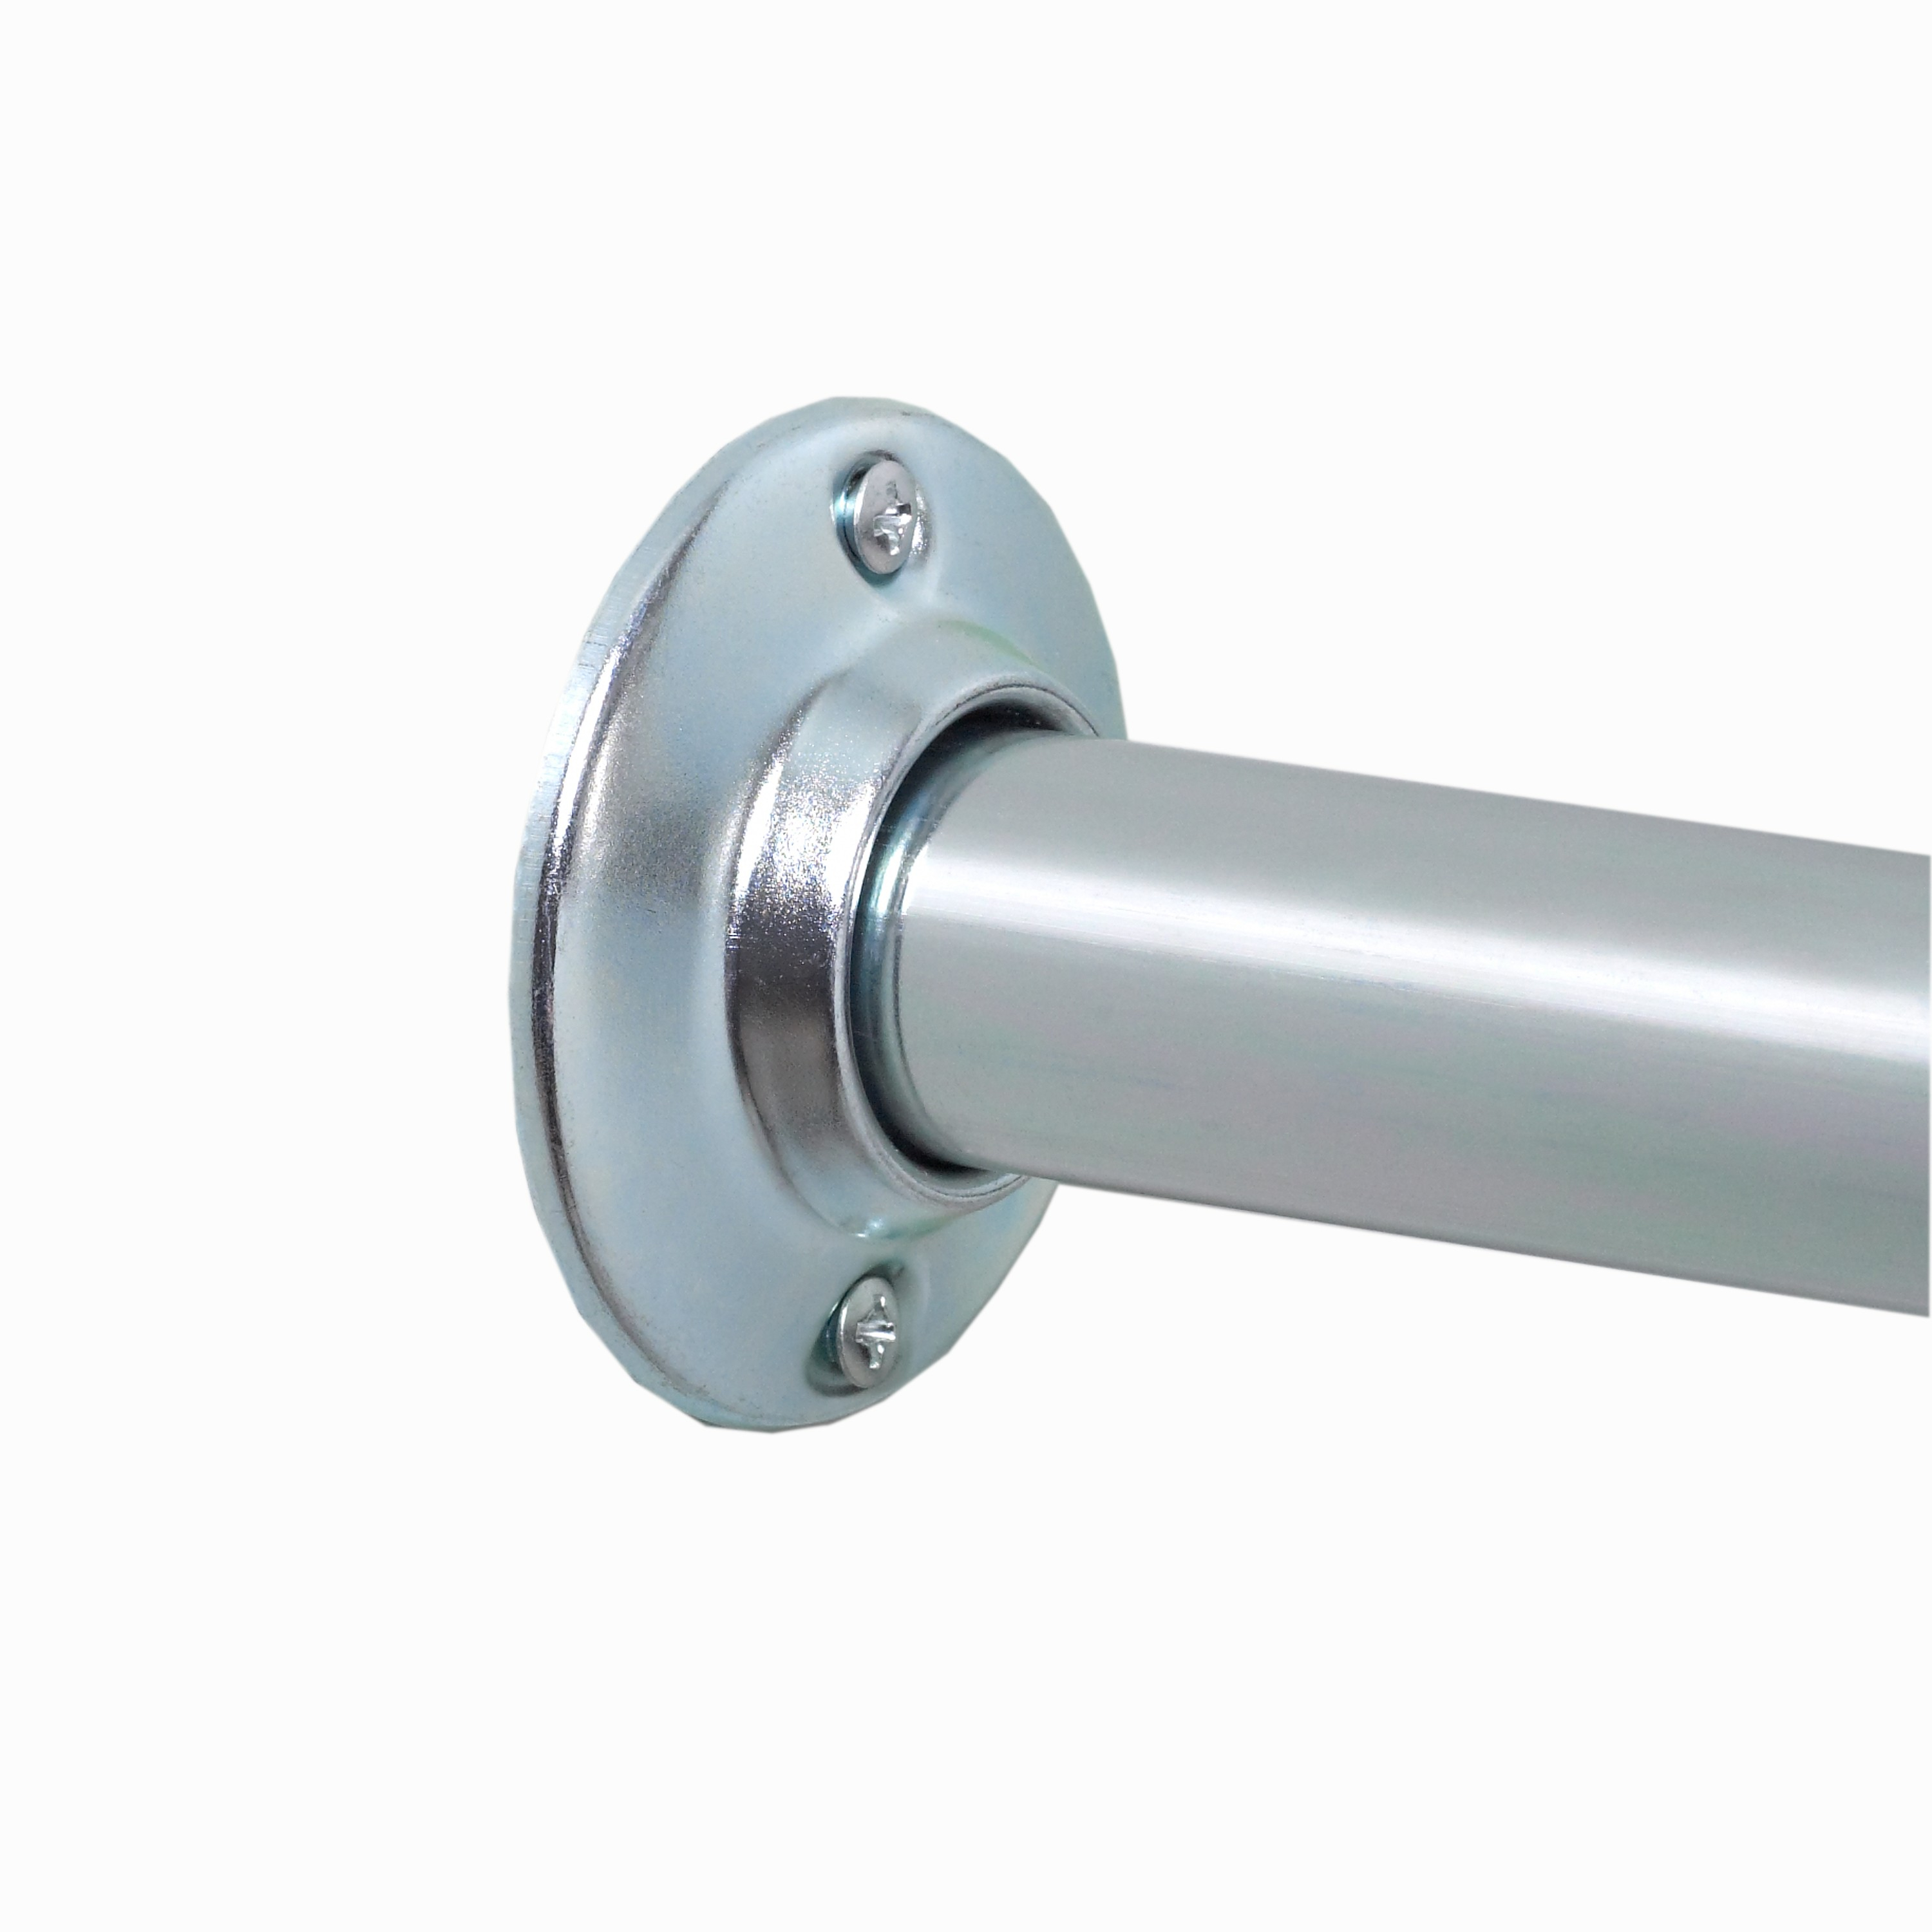 Screw In Shower Rod.Screw Mounted Shower Curtain Rod Shower Curtains Ideas